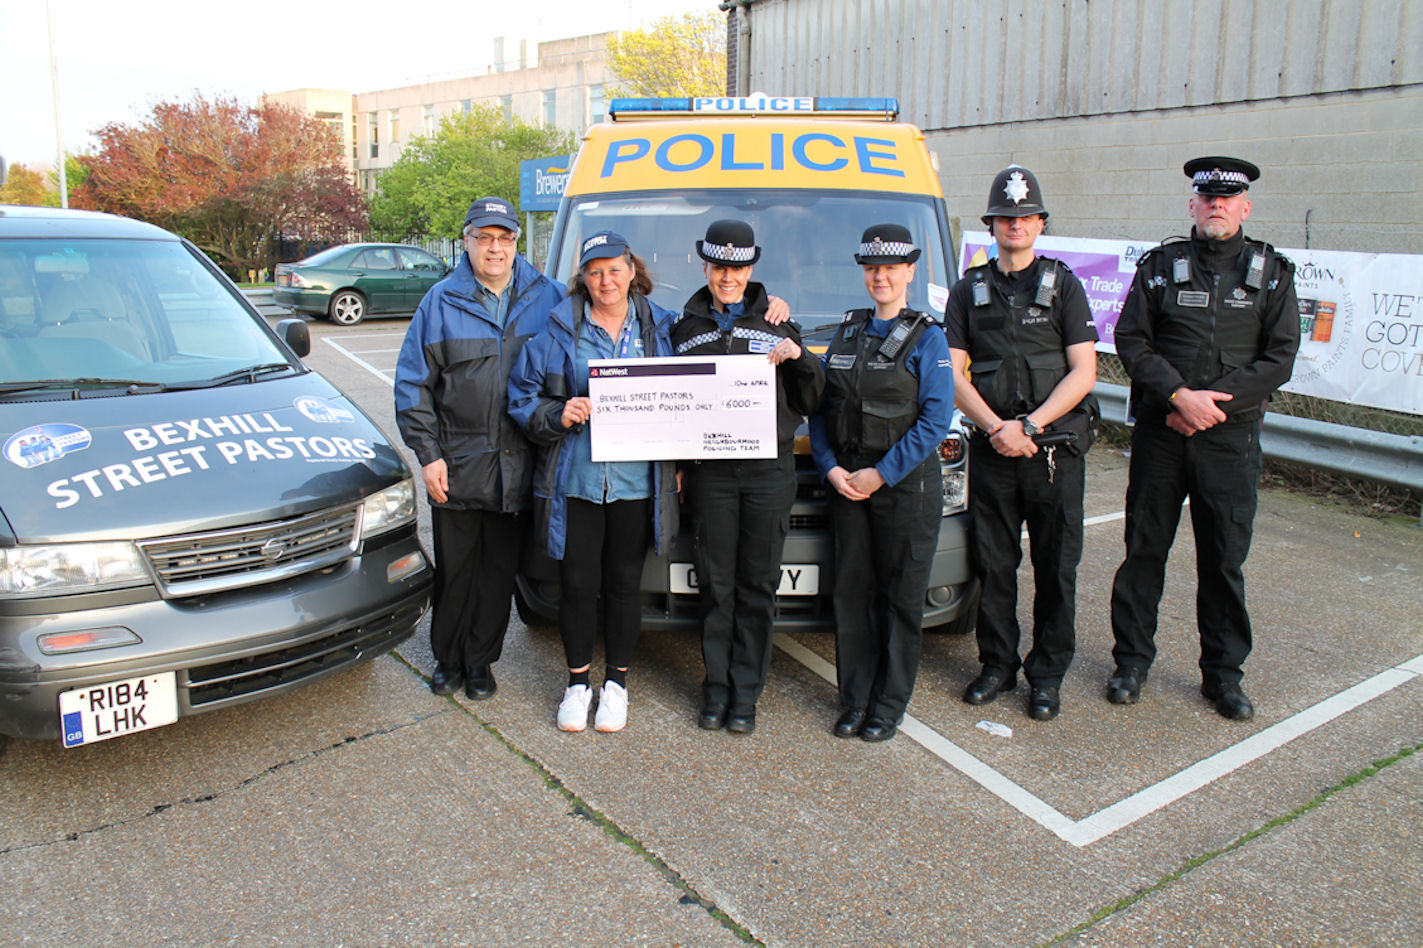 Bexhill Street Pastors benefit from £6,000 donation